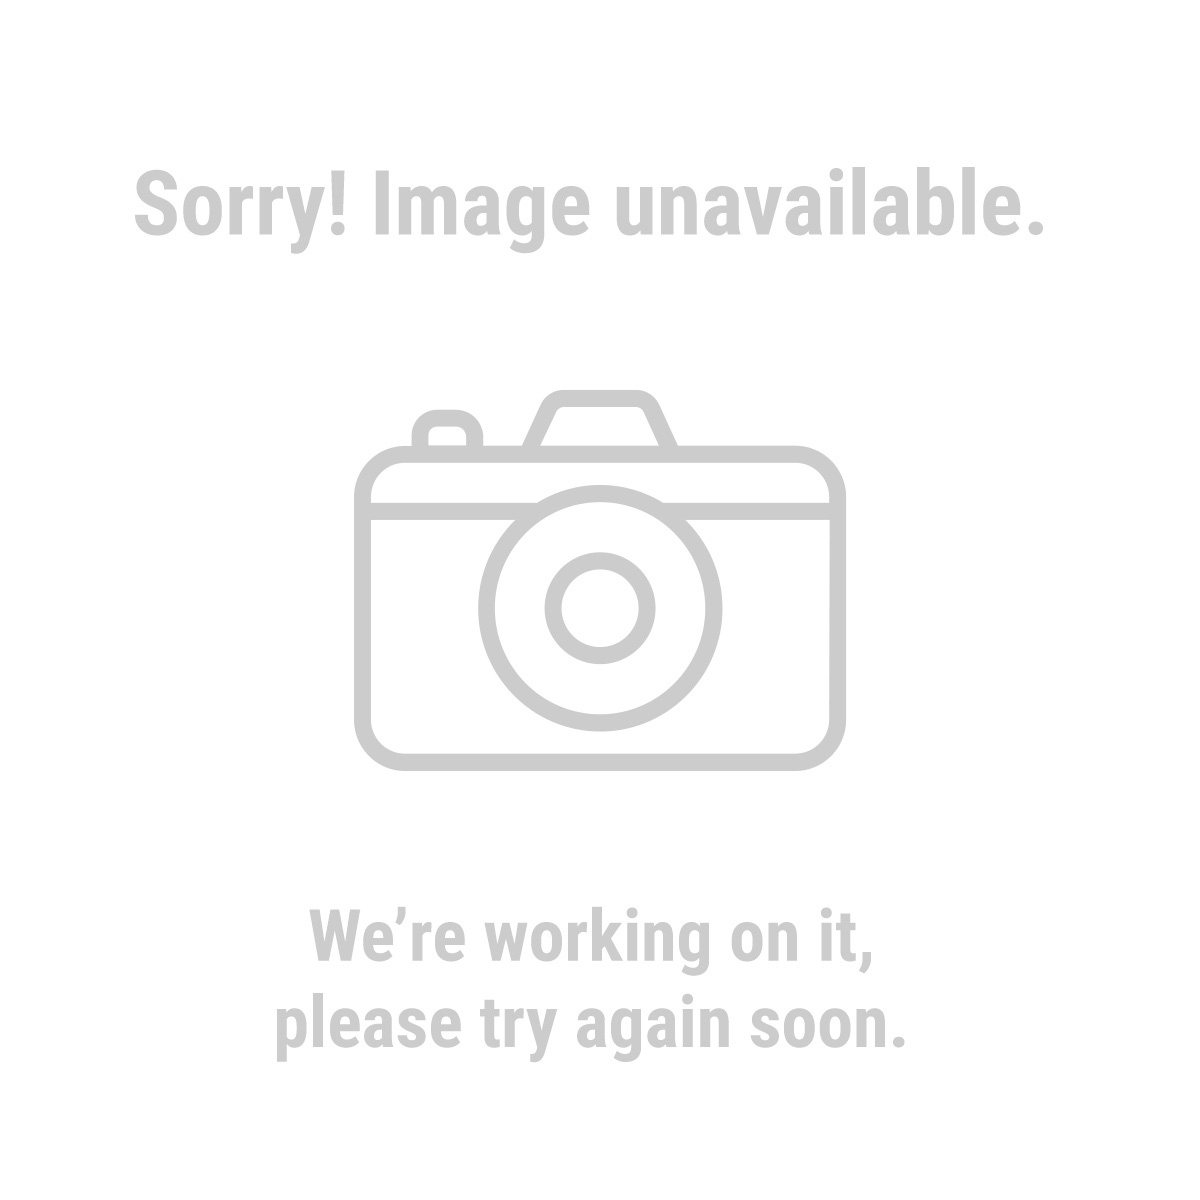 Drill Master 62405 3.2 Amp Variable Speed Jig Saw